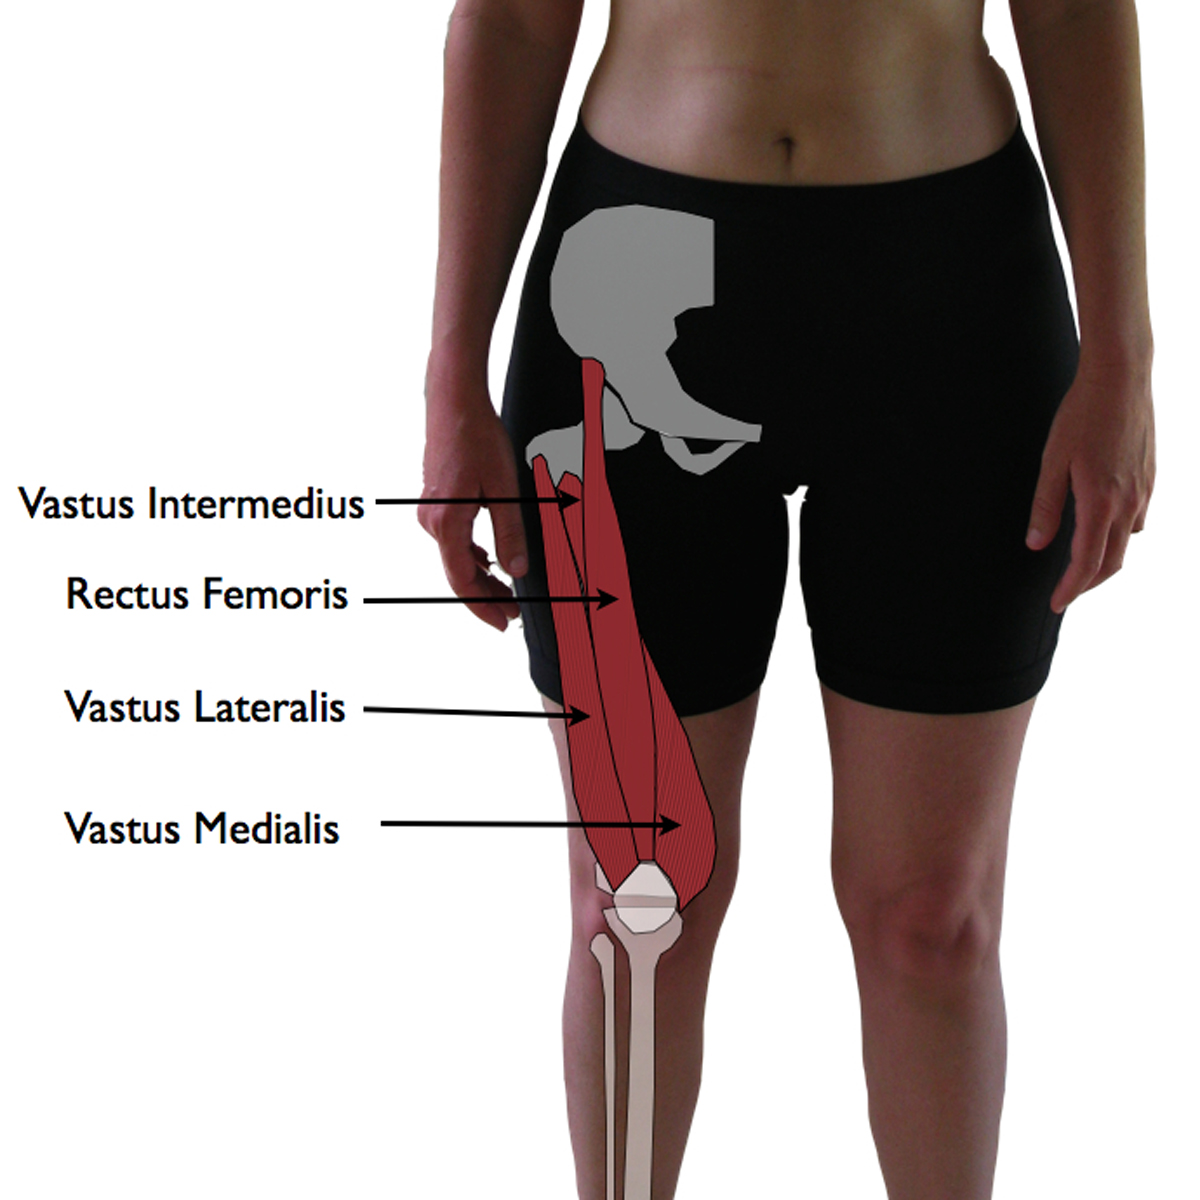 Vastus Lateralis Trigger Points: The Knee Pain Trigger Points - Part ...